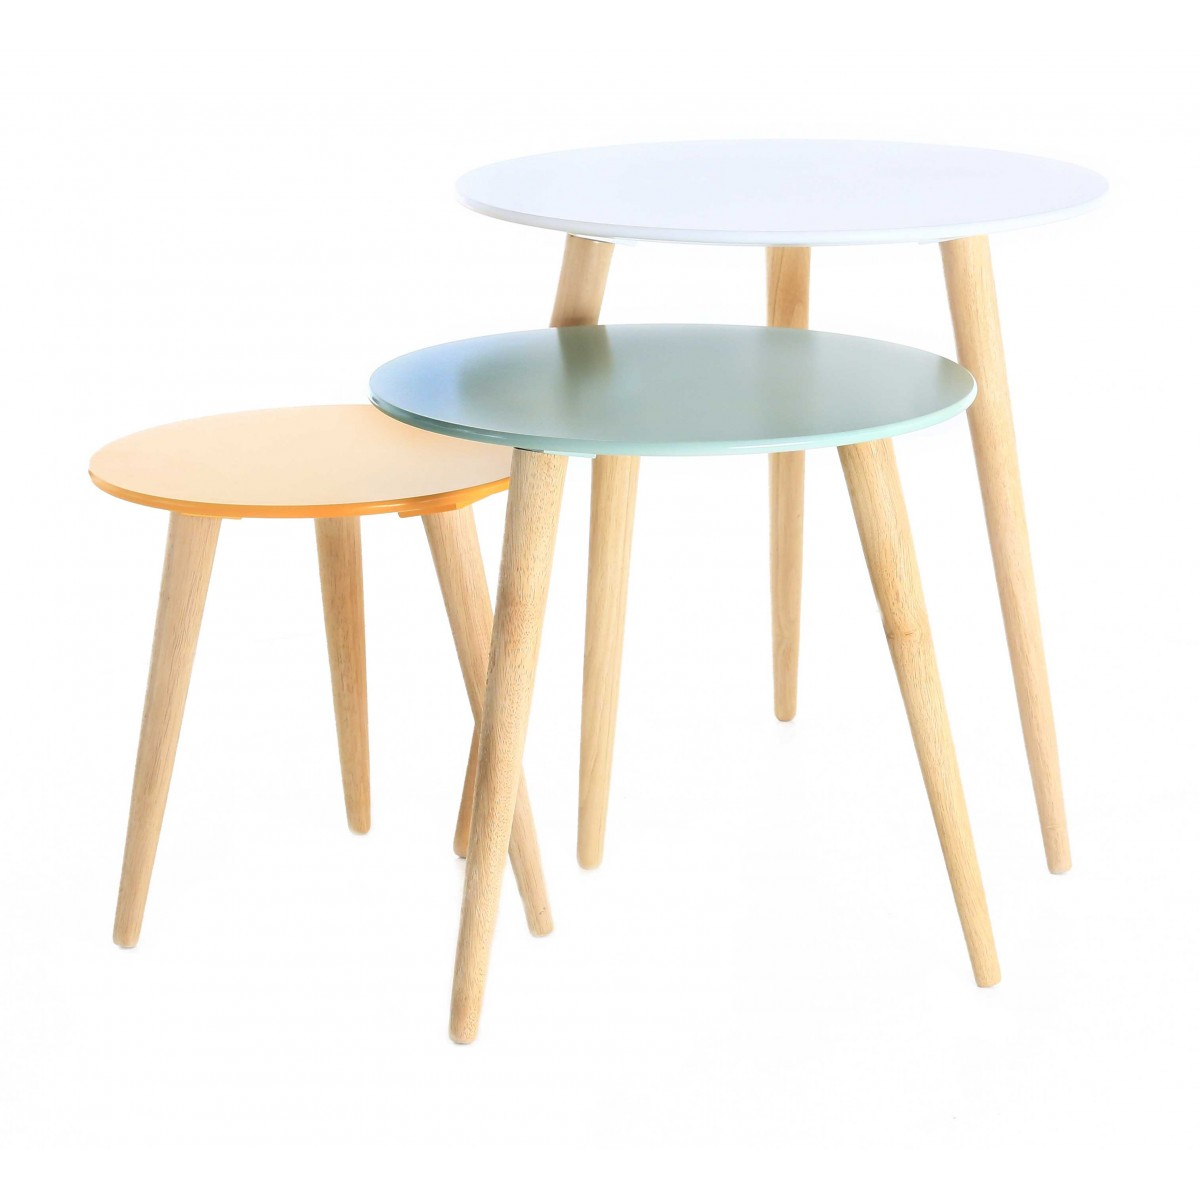 Set de 3 tables gigognes rondes scandinaves mooviin - Table gigogne blanche ...